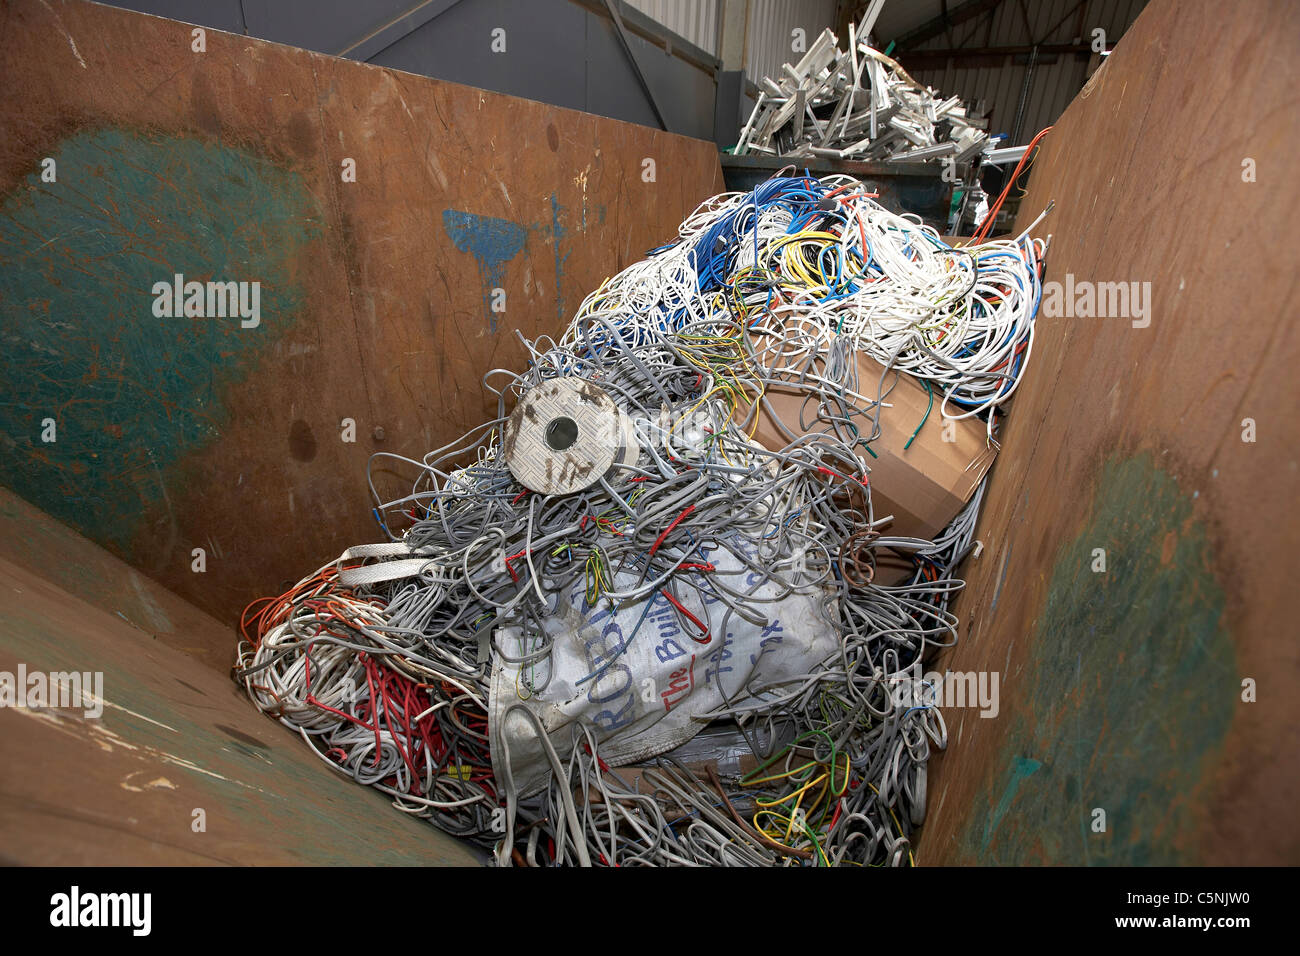 Copper Scrap Stockfotos & Copper Scrap Bilder - Alamy